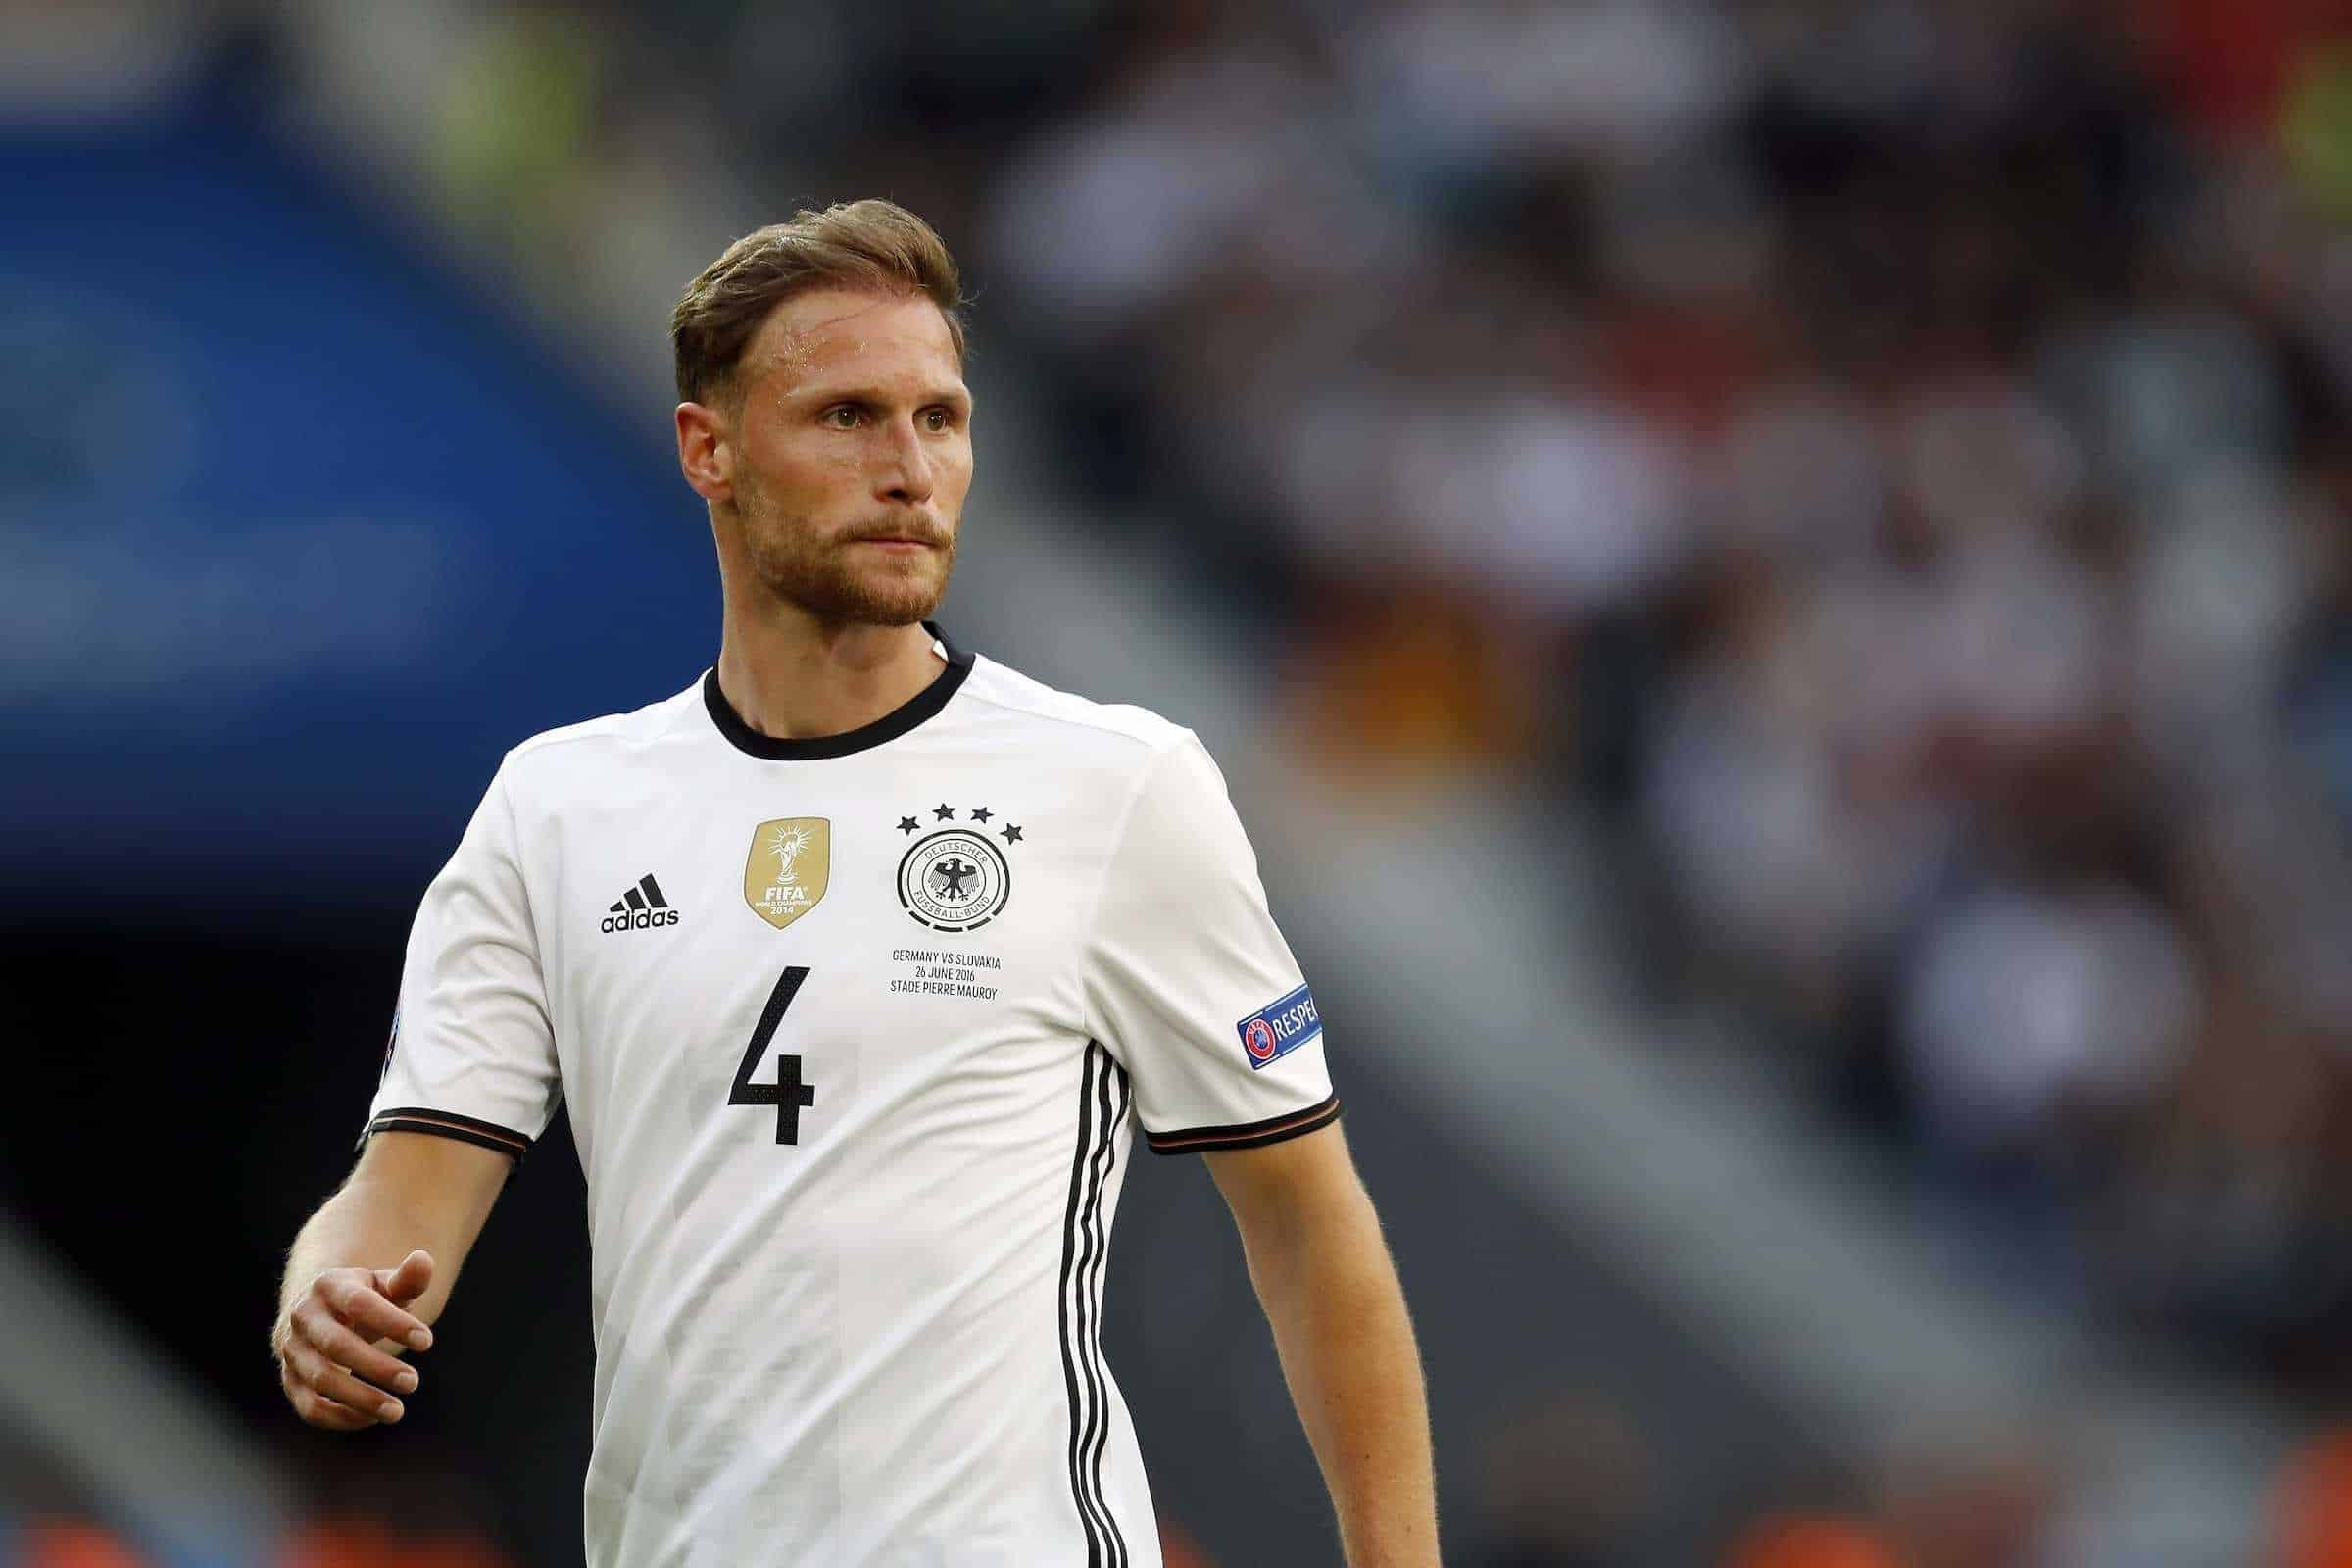 Benedikt Howedes of Germany during the UEFA Euro 2016 round of 16 match between Germany and Slovakia on June 26, 2016 at the stade Pierre-Mauloy in Lille, France. ( VI Images/VI Images/PA Images)